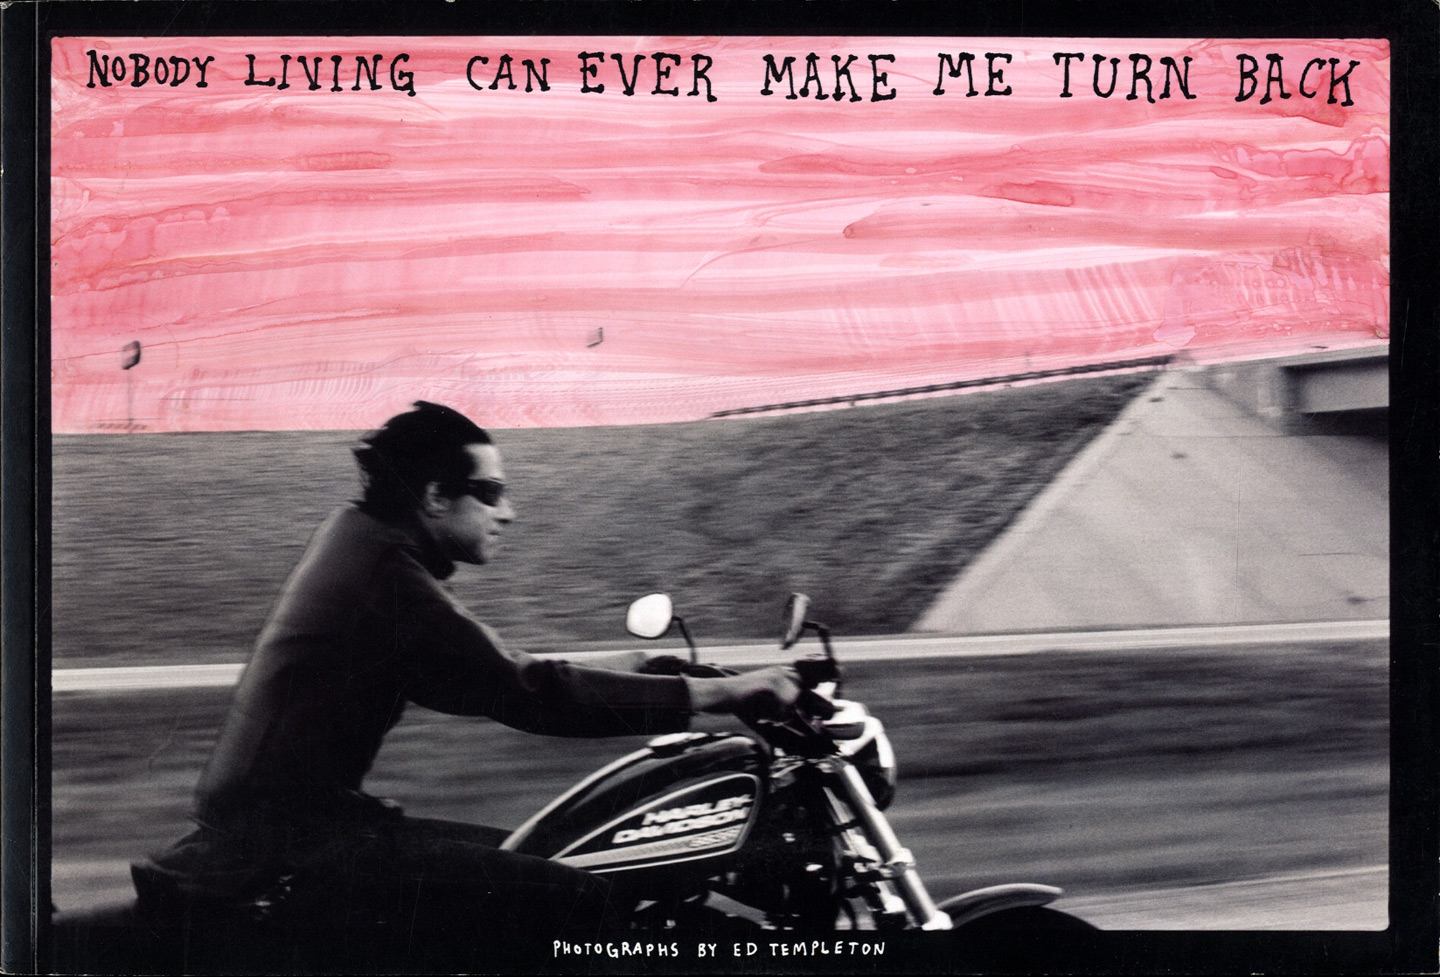 Ed Templeton: Nobody Living Can Ever Make Me Turn Back: From Denver to Chicago on Emerica's Wild Ride 2006